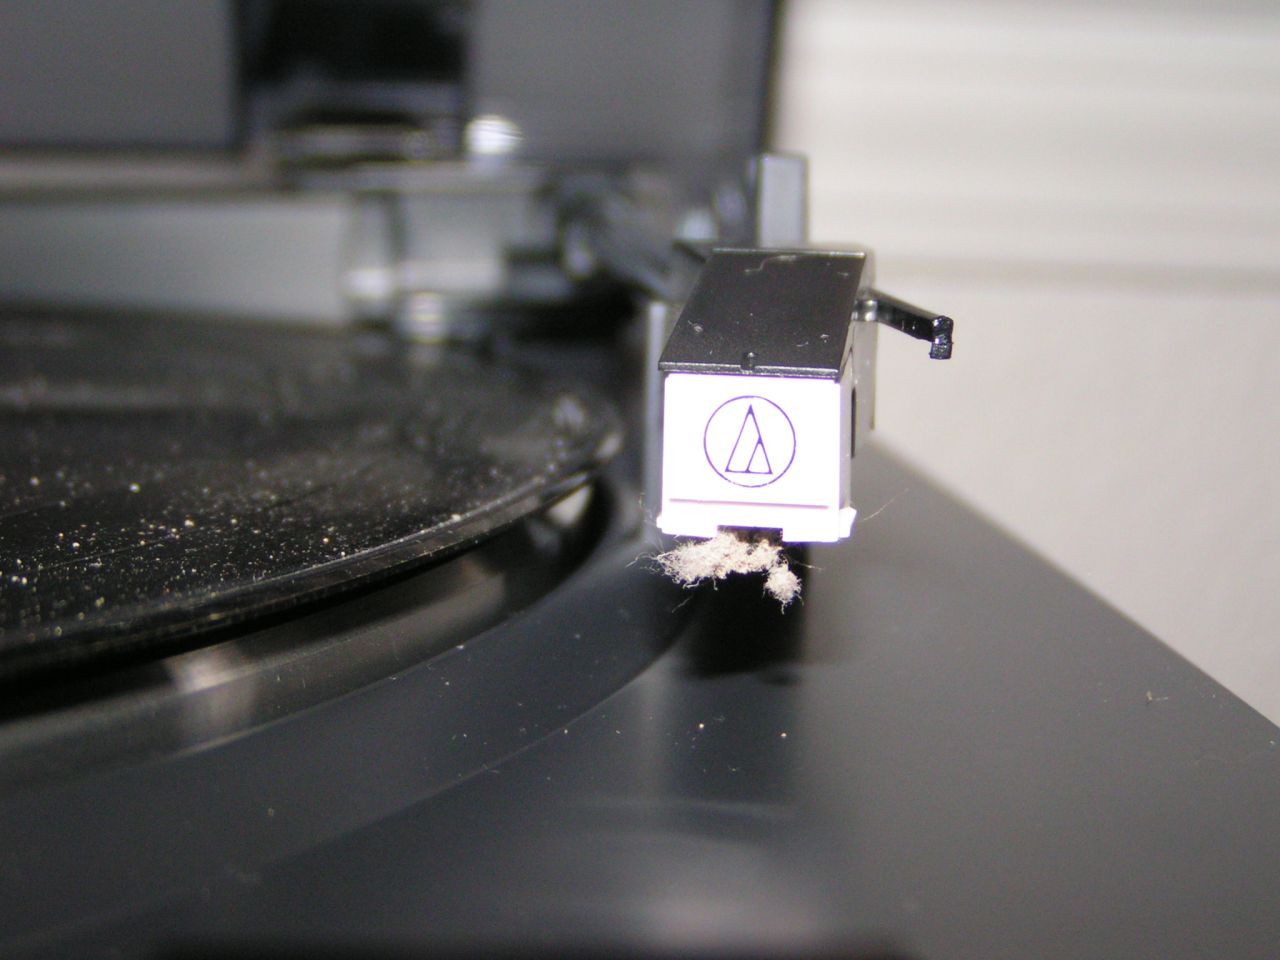 Audio Technica At Lp2d Usb Turntable Review Samples